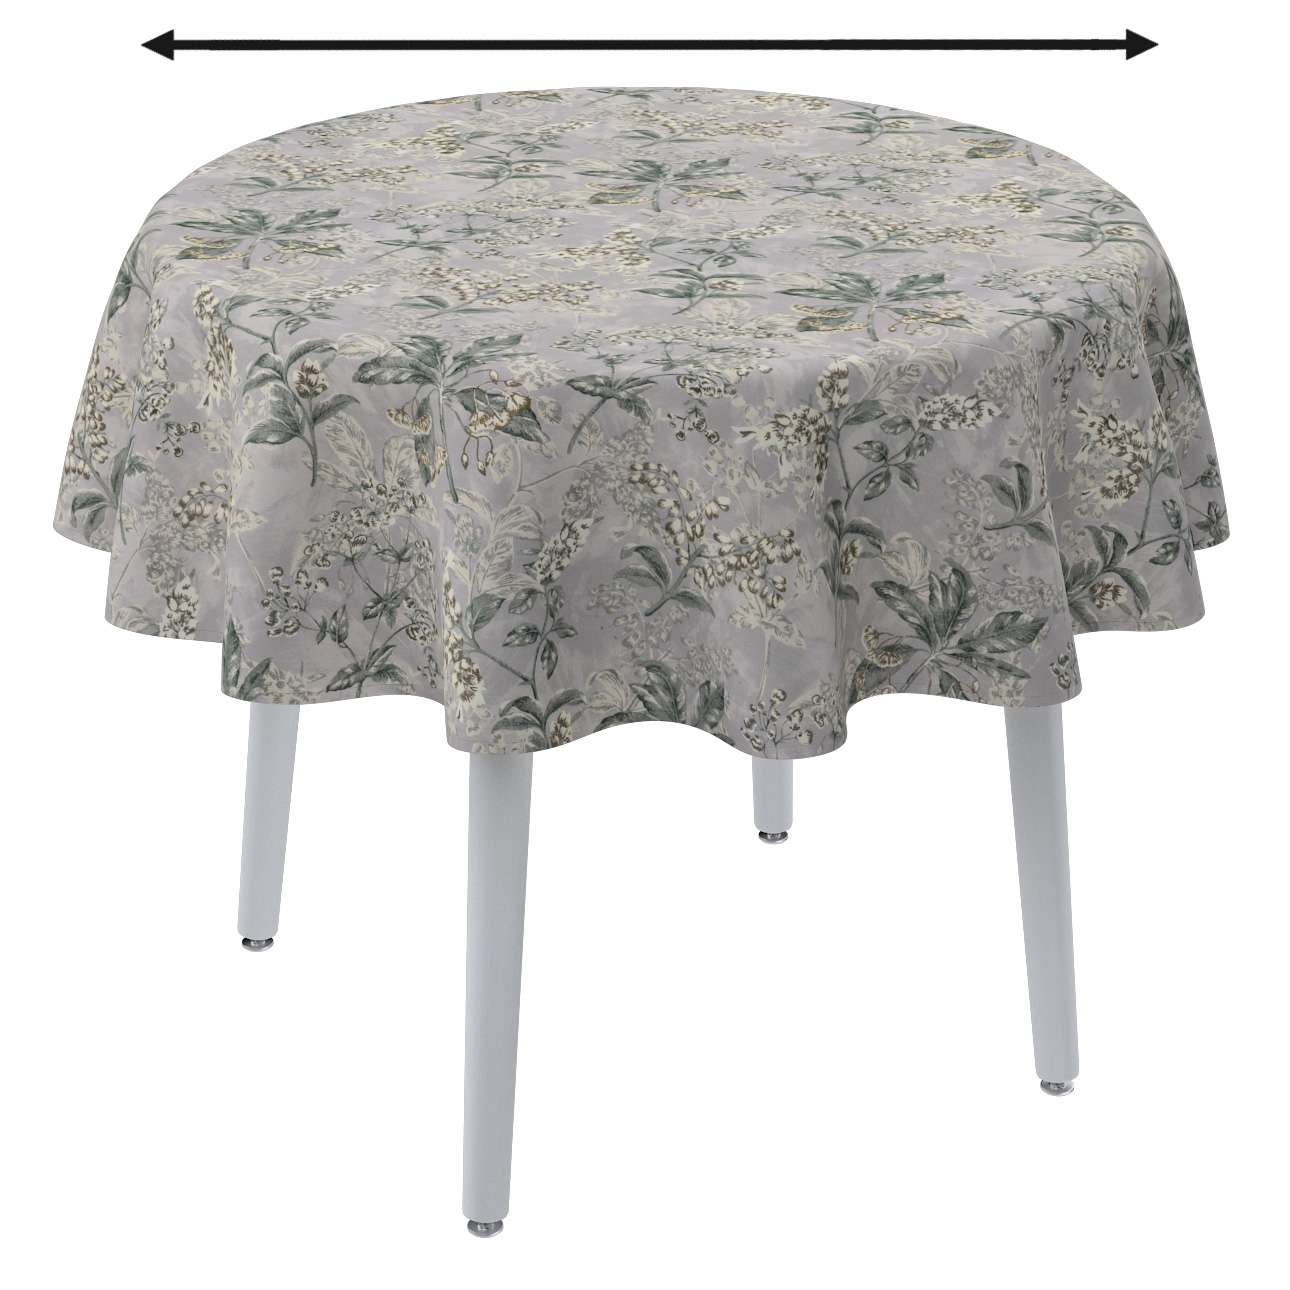 Round tablecloth in collection Londres, fabric: 143-37